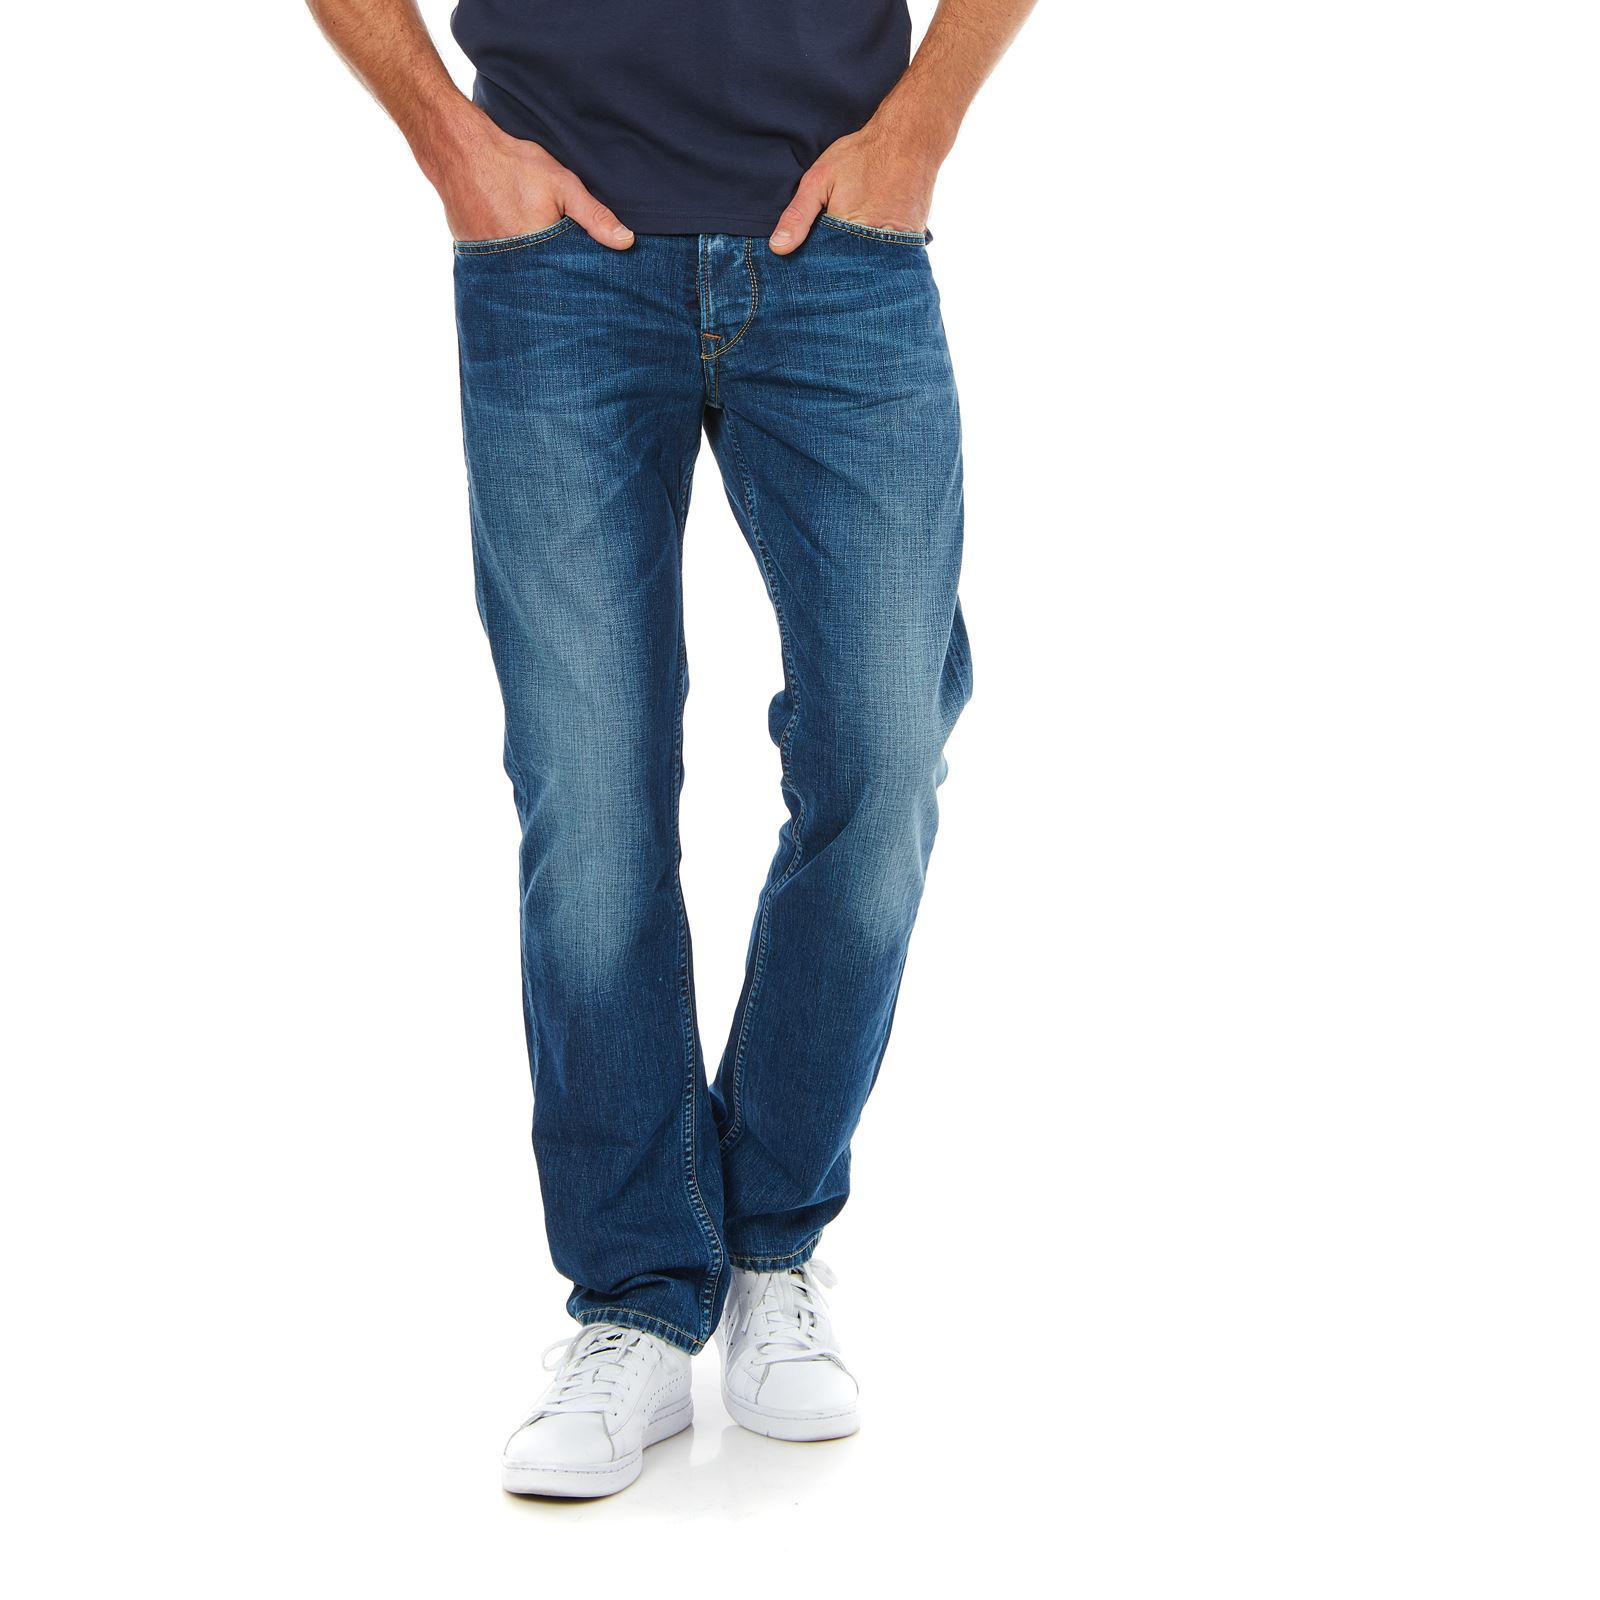 London Heston  Droit  Denim Bleu